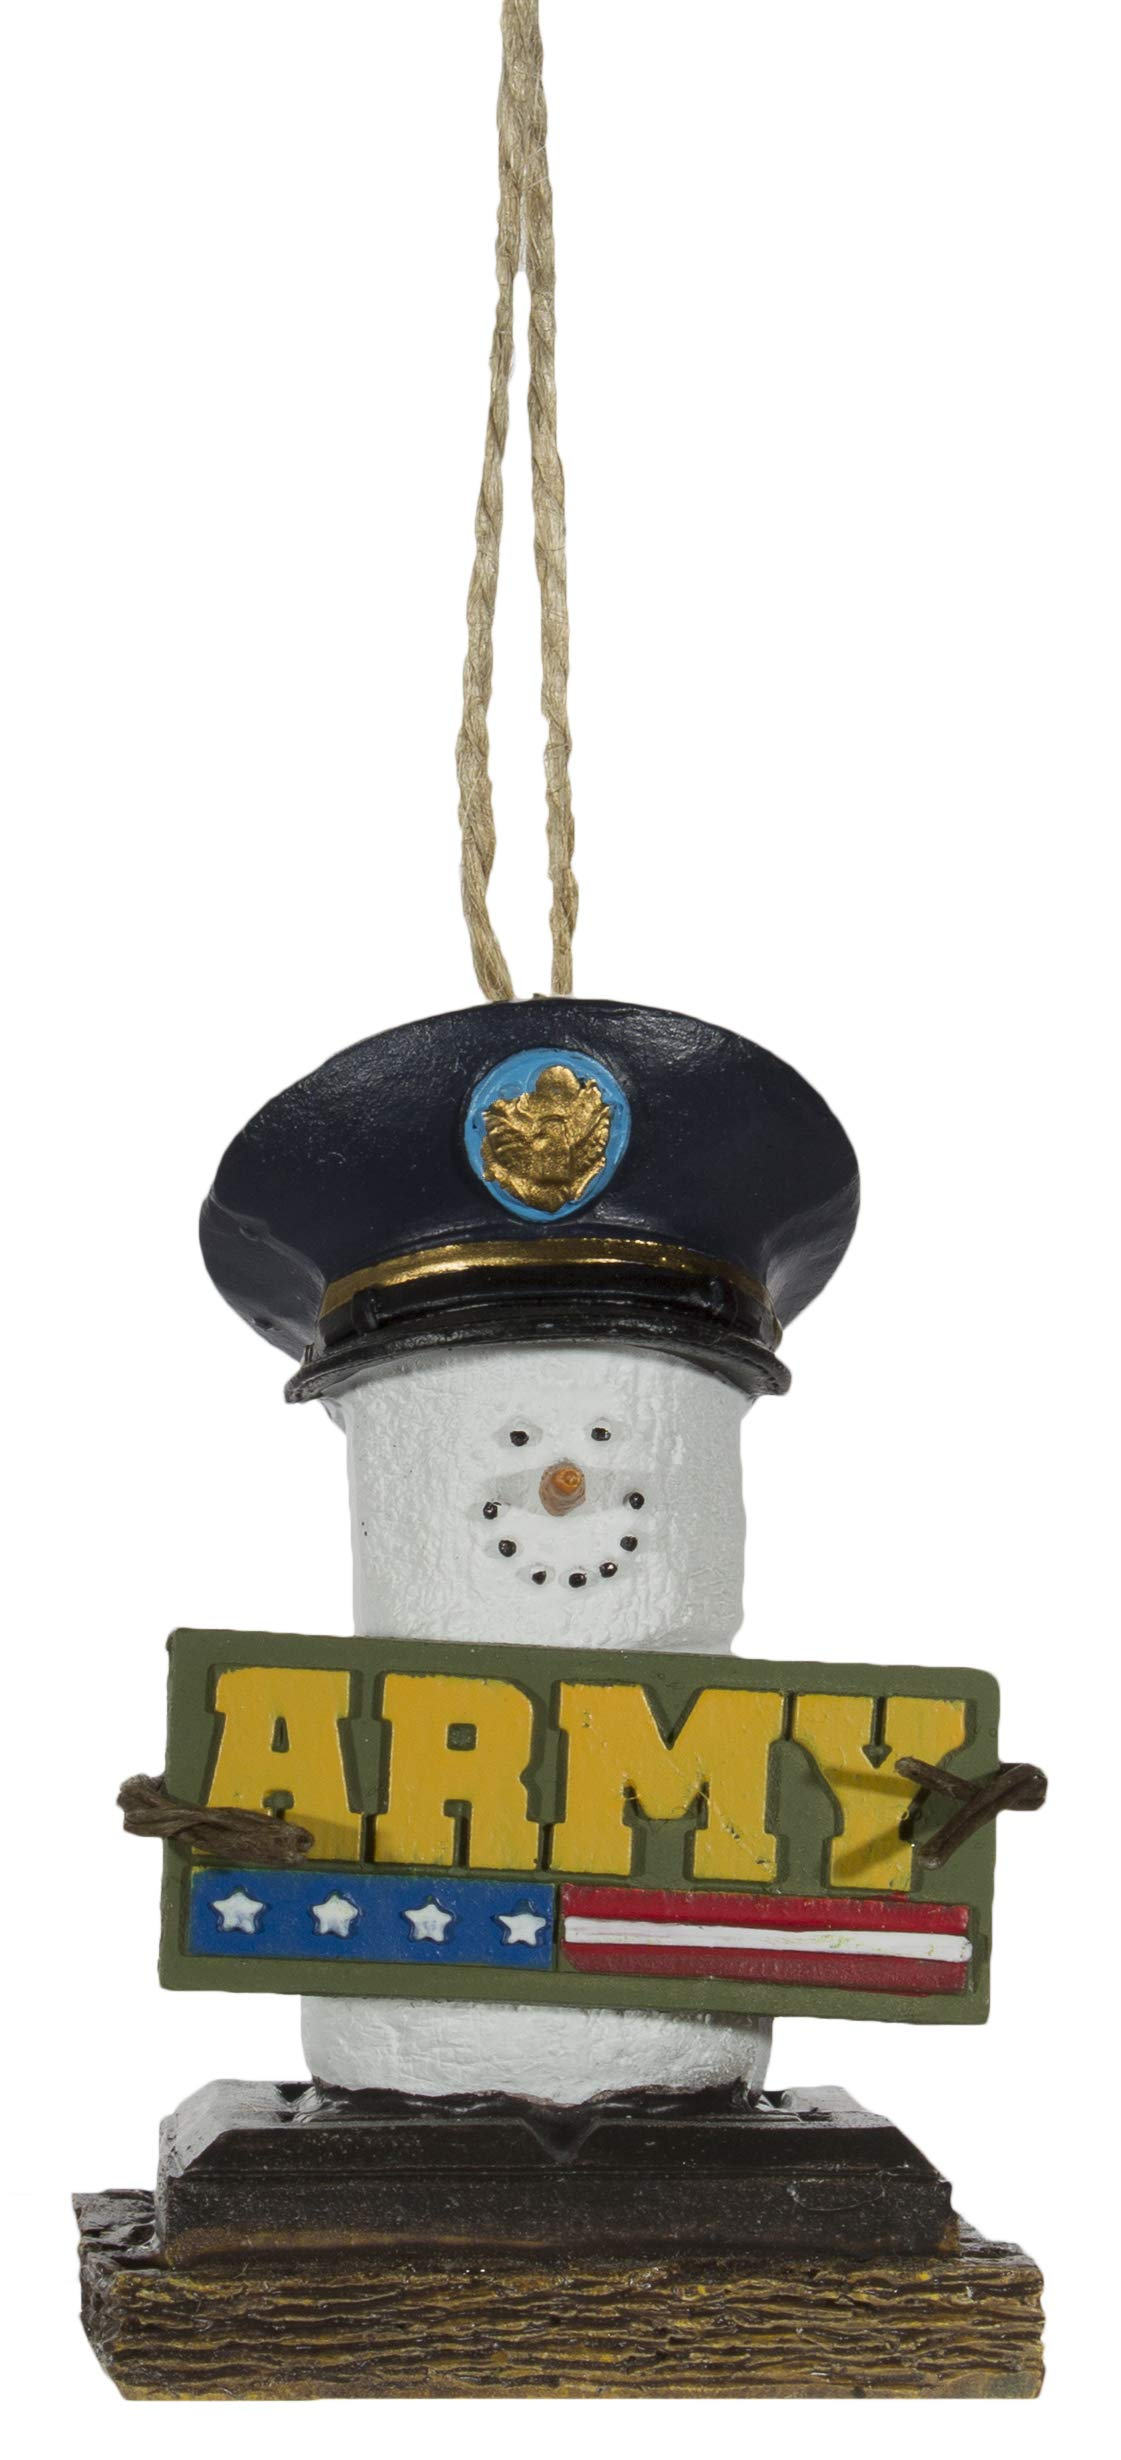 Midwest-CBK S'Mores Military Christmas/Everyday Ornament - Army